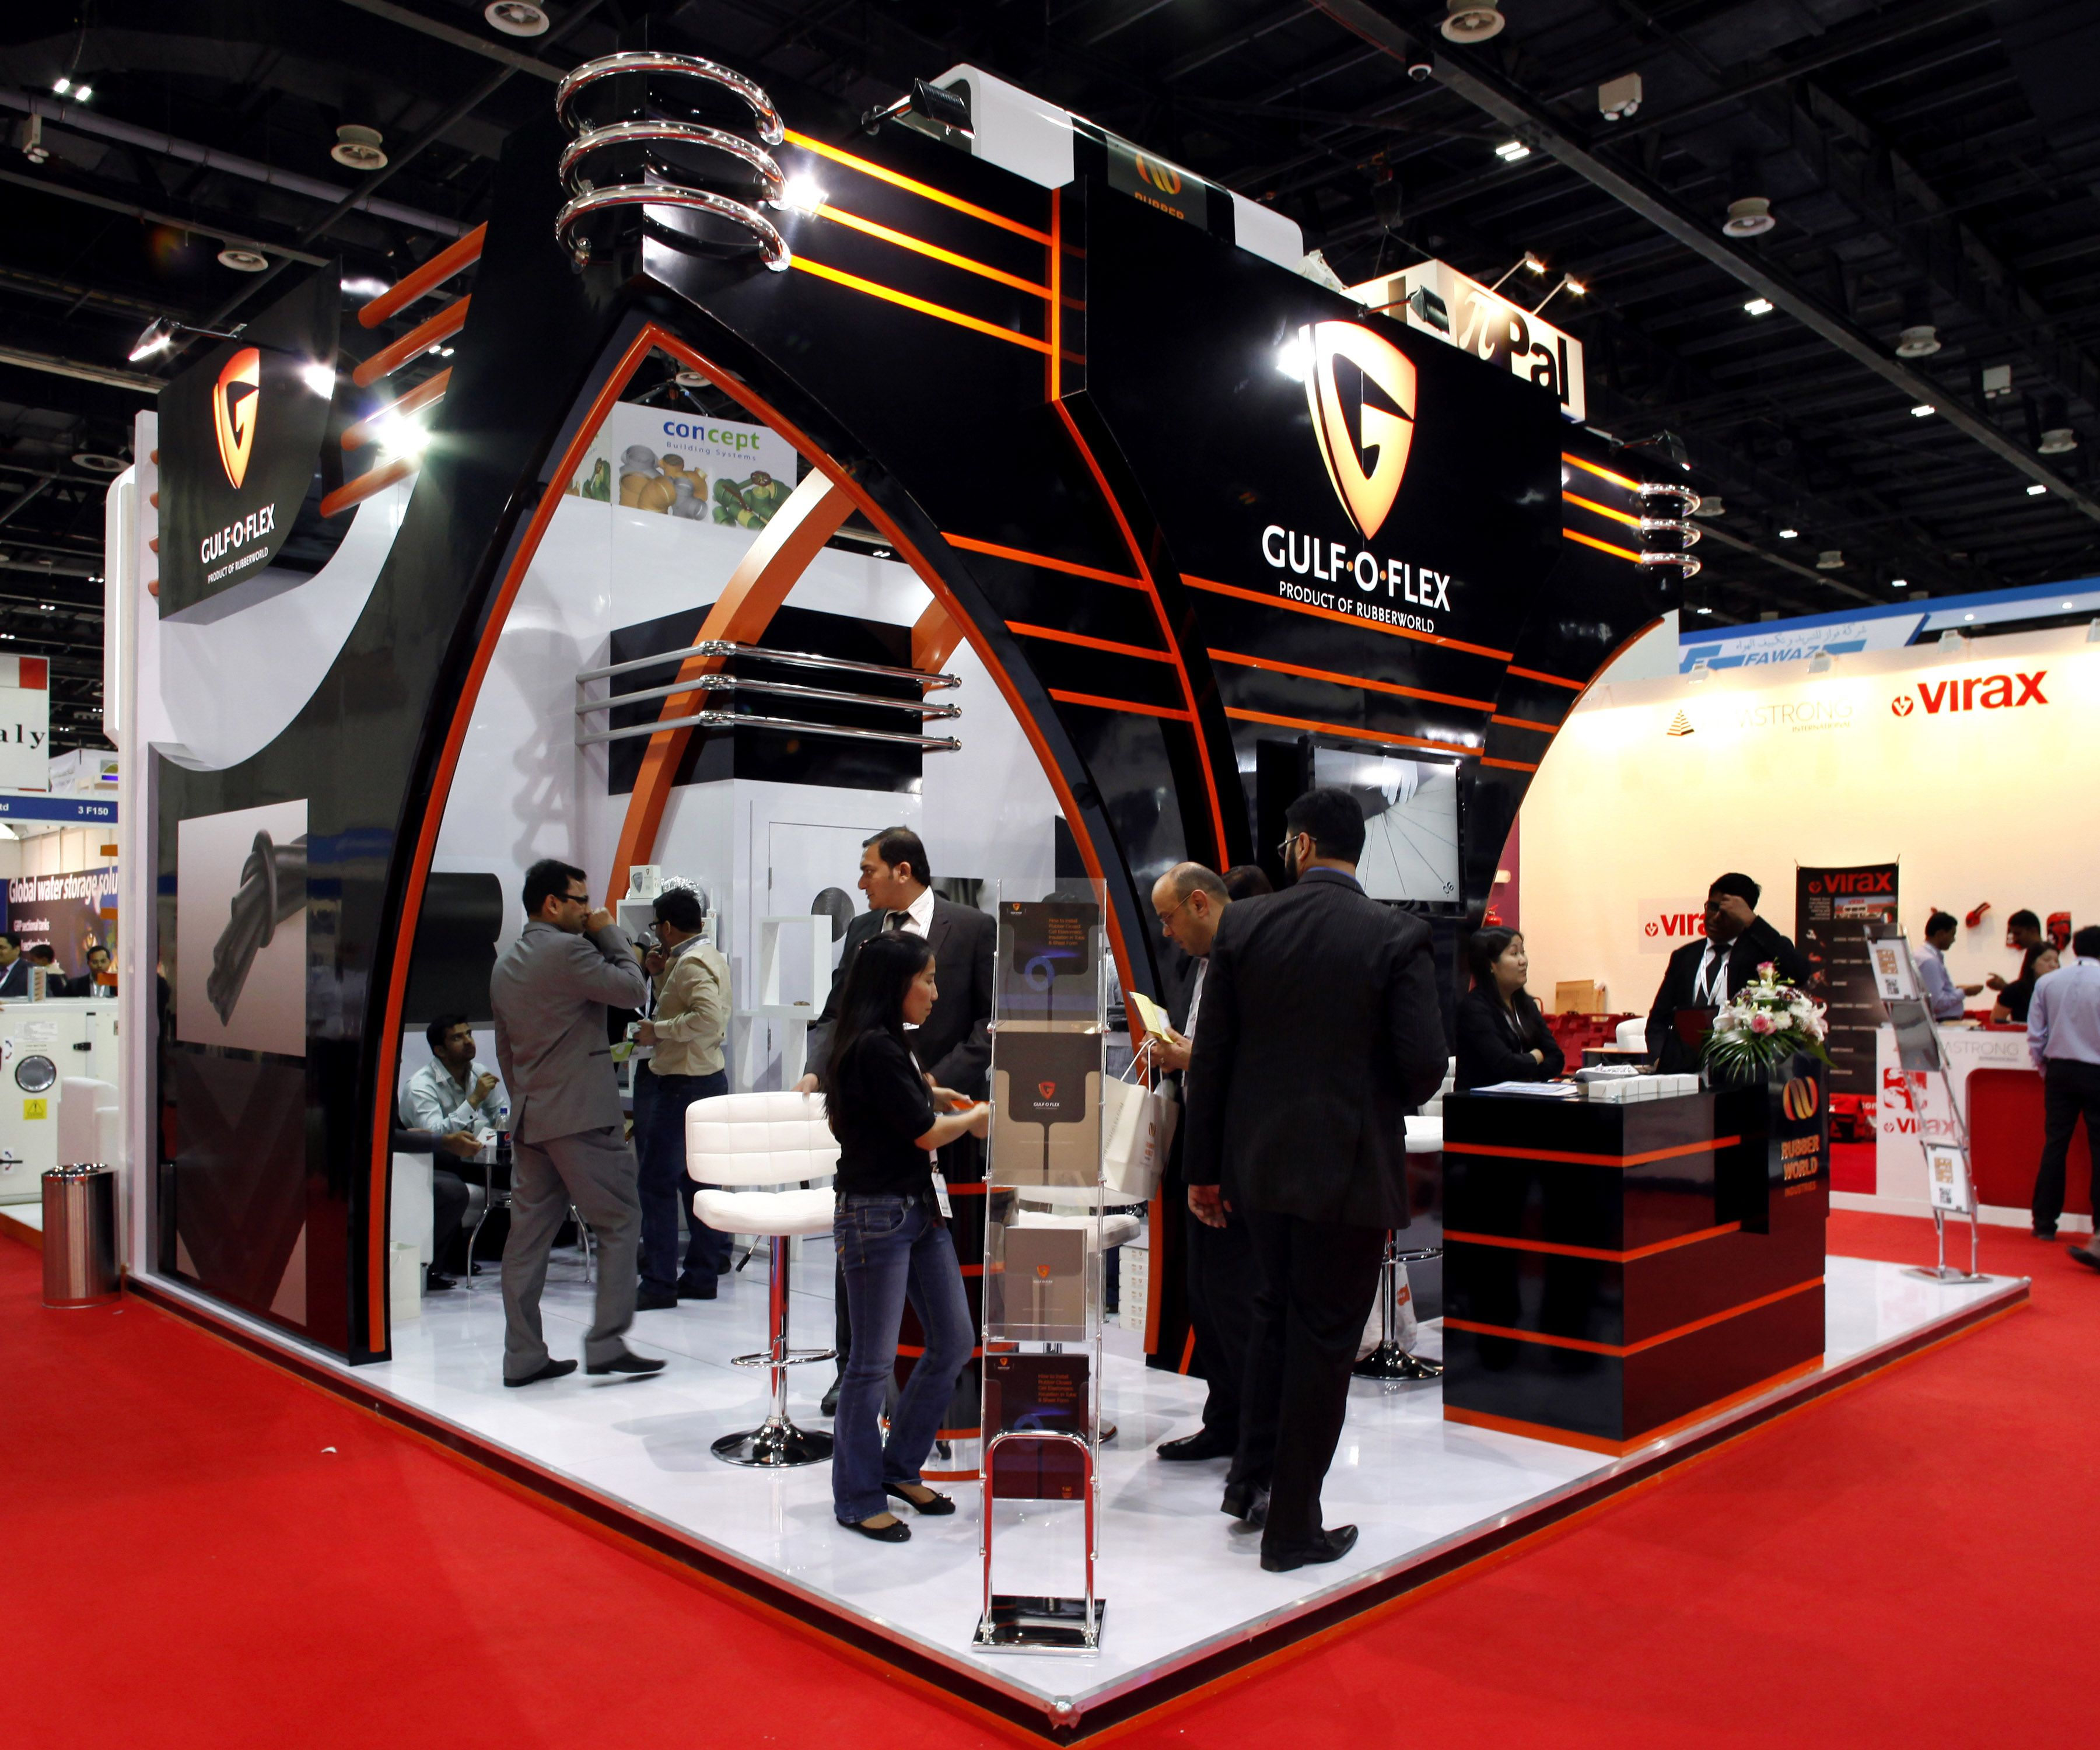 Flexible Exhibition Stands : Gulf o flex exhibition stand designed and produced by